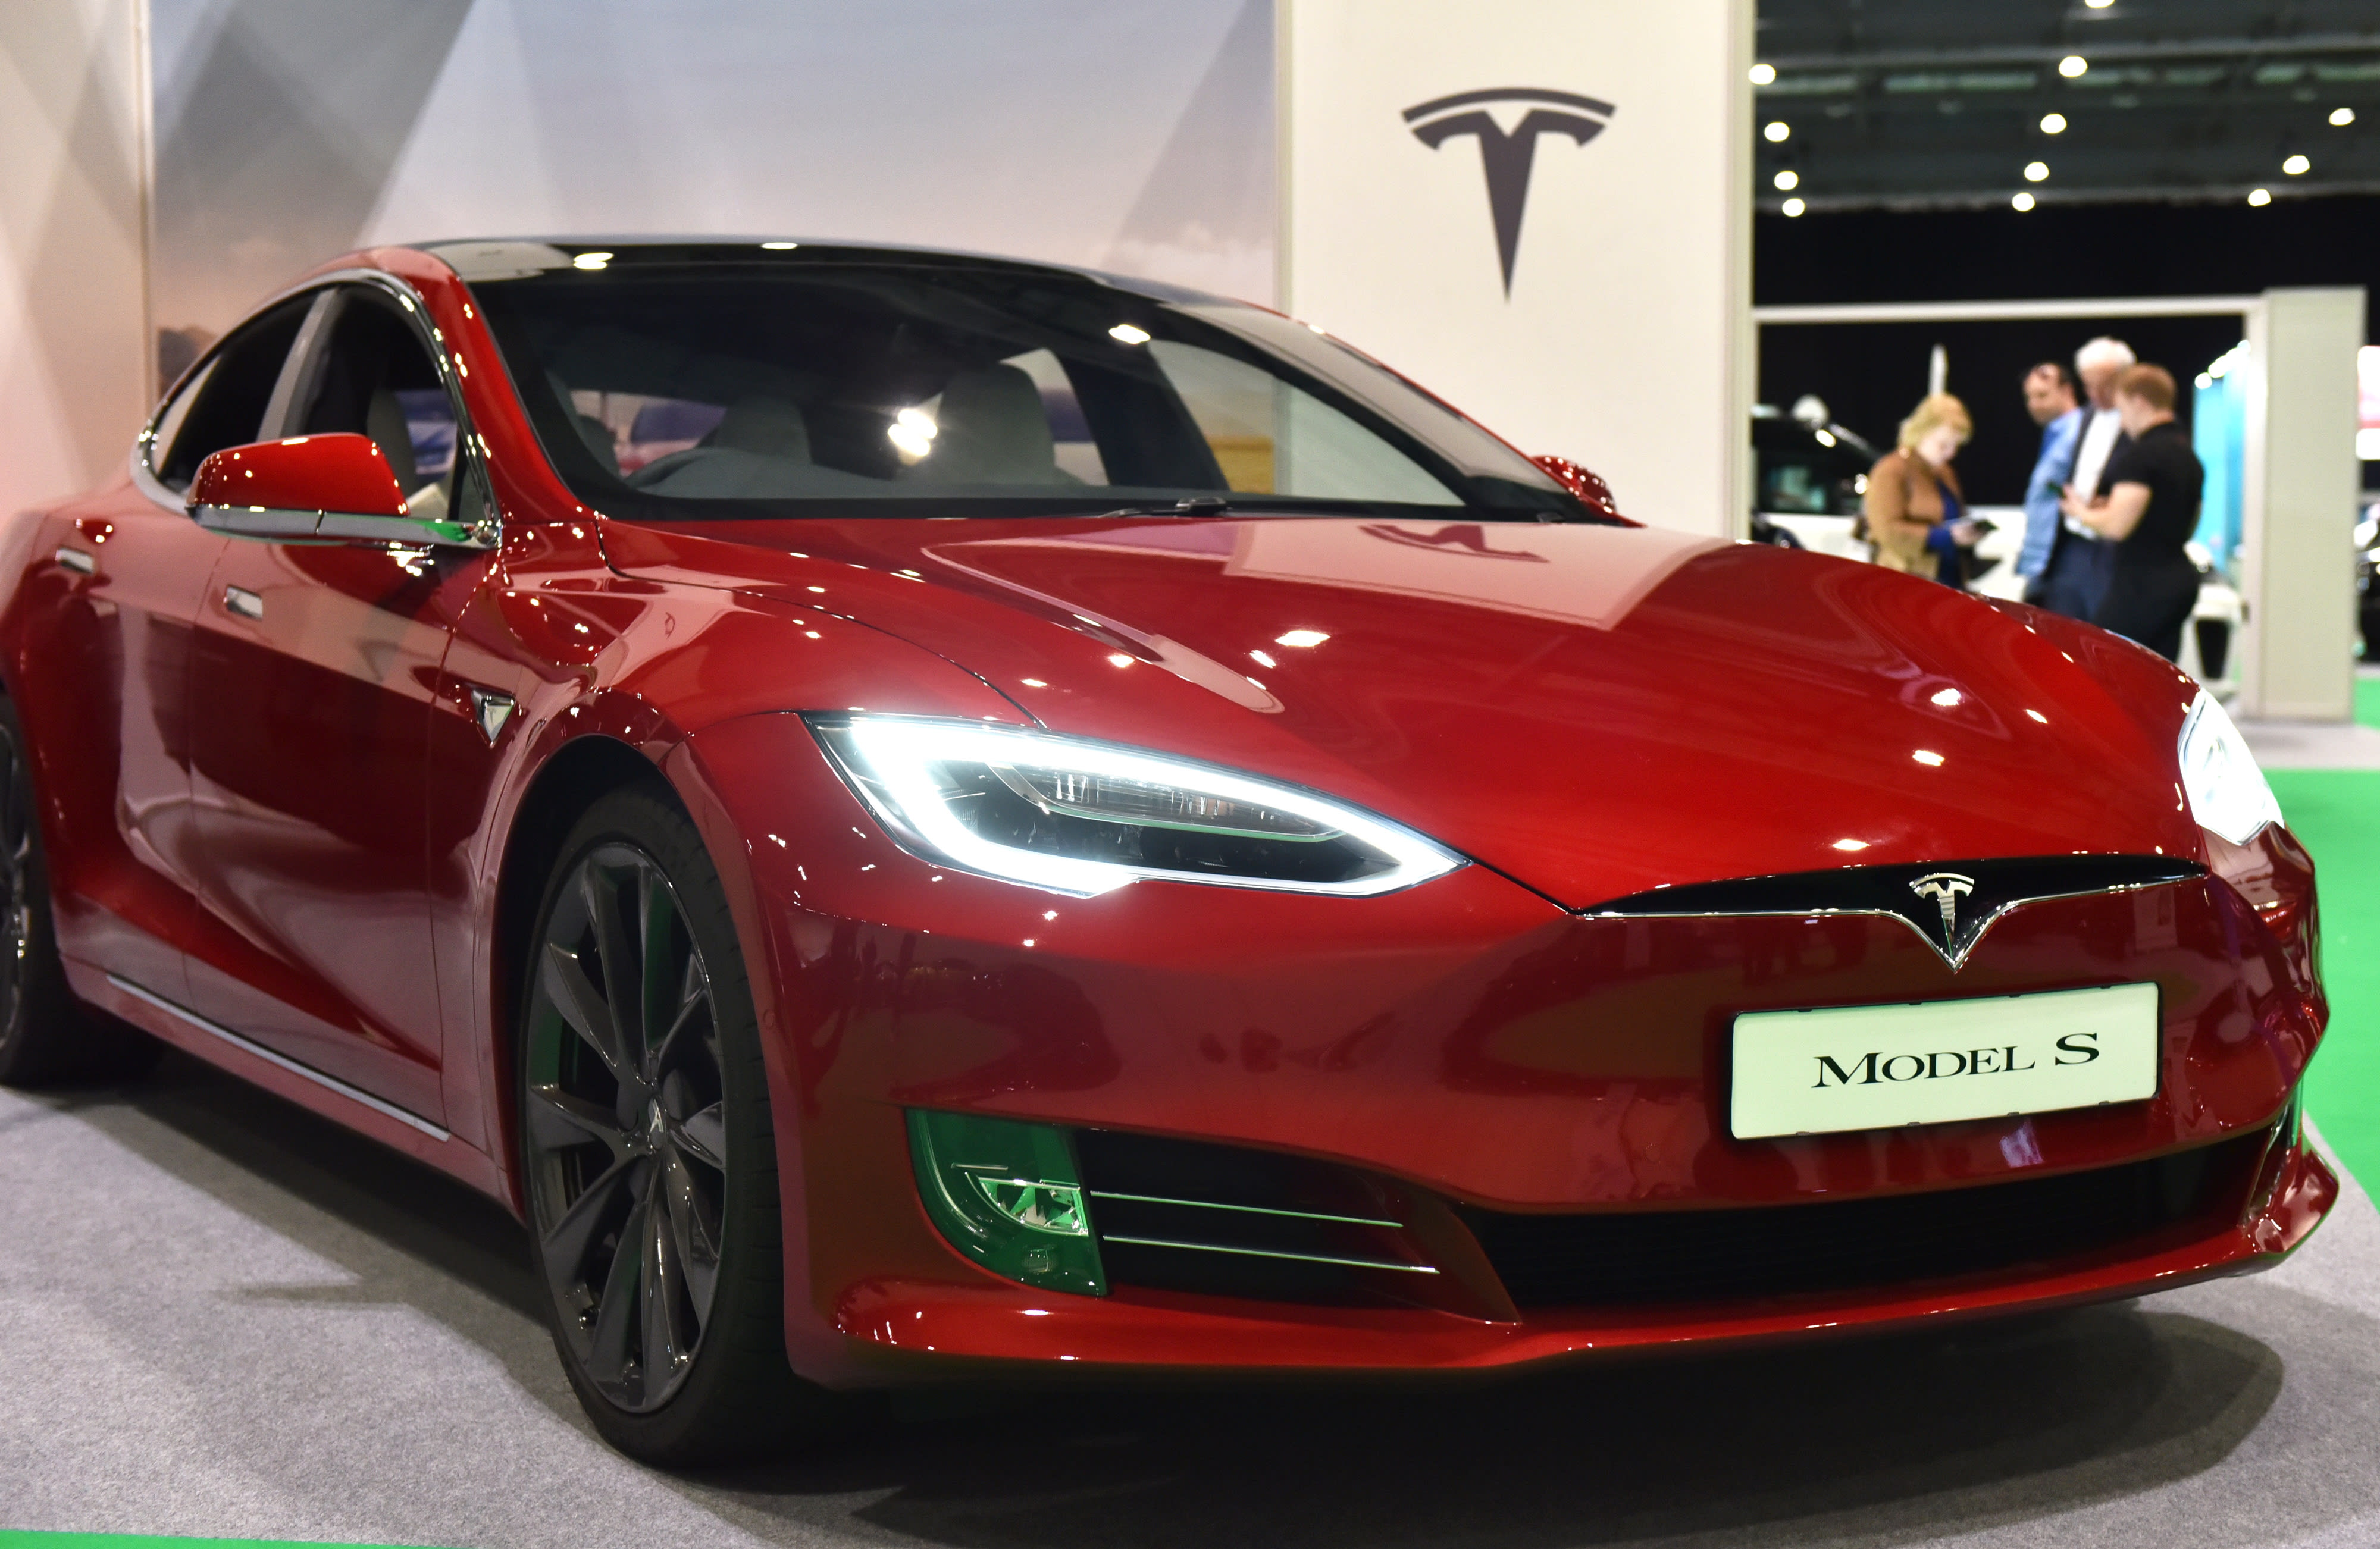 Engineers have been able to make Tesla even better